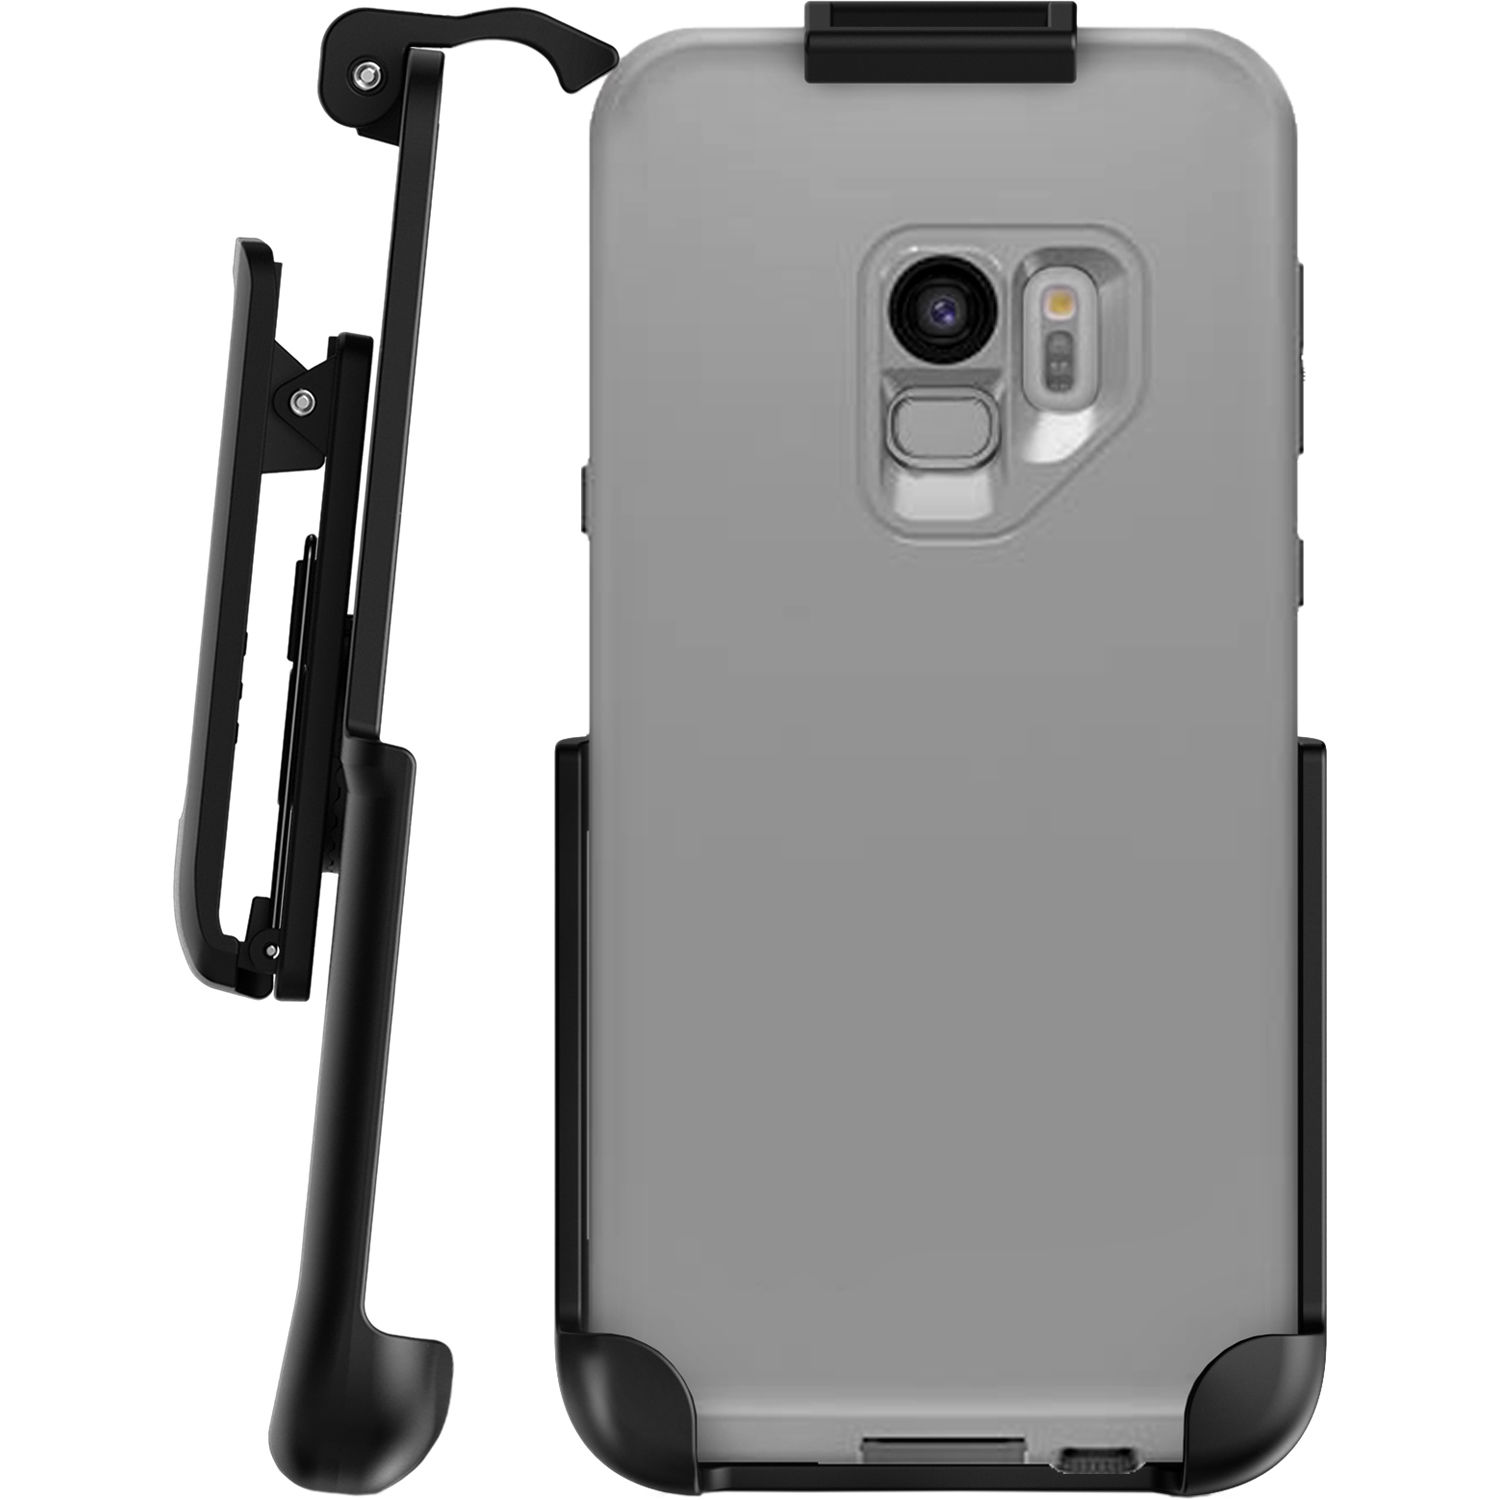 on sale 2ee26 5a7b5 Encased Belt Clip Holster for Samsung Galaxy S9 LifeProof Fre Case